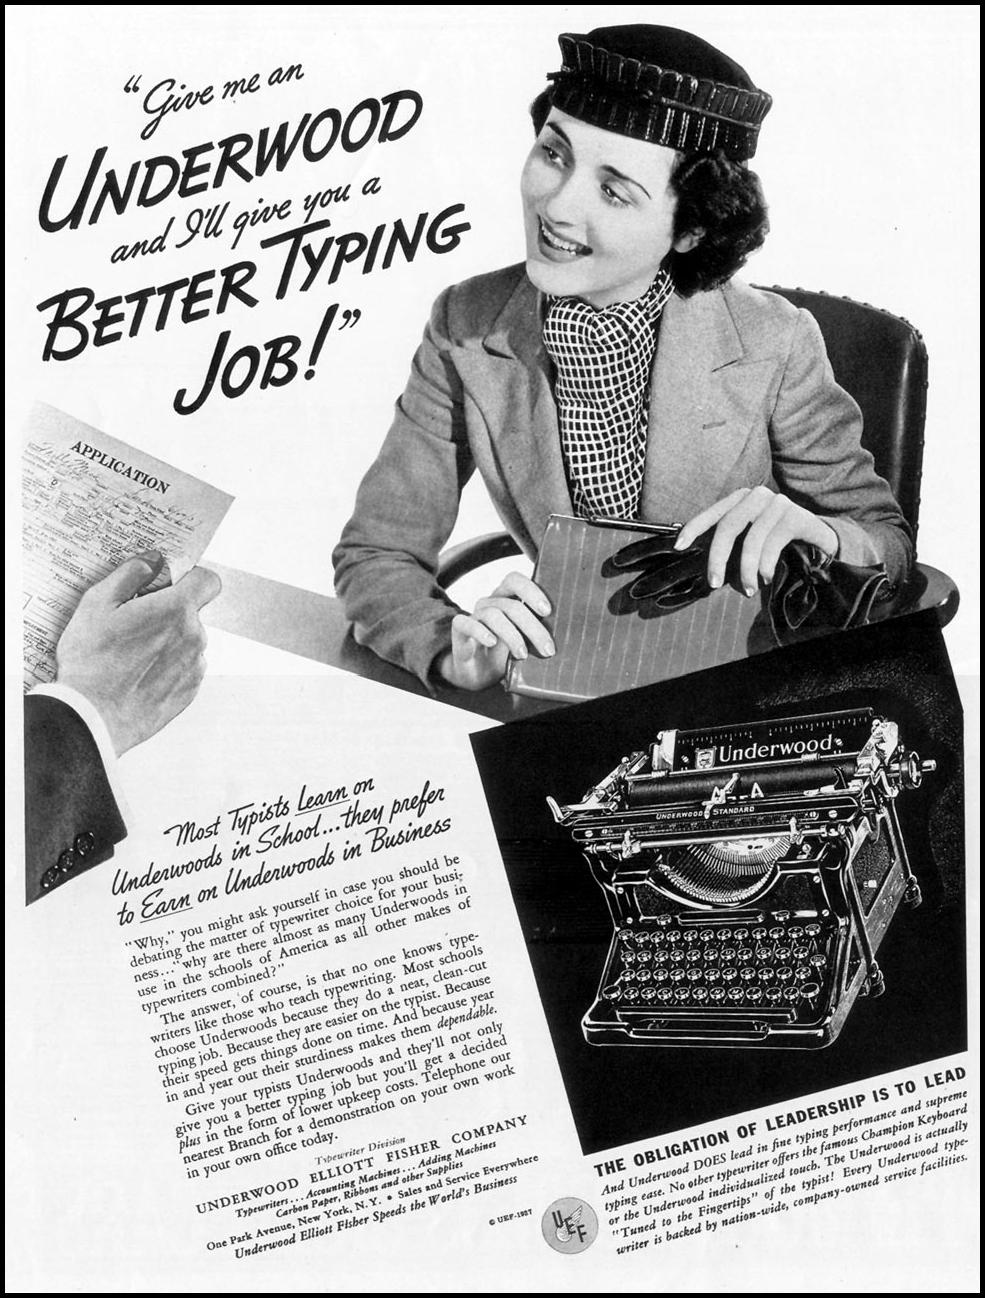 UNDERWOOD TYPEWRITERS LIFE 09/13/1937 p. 2